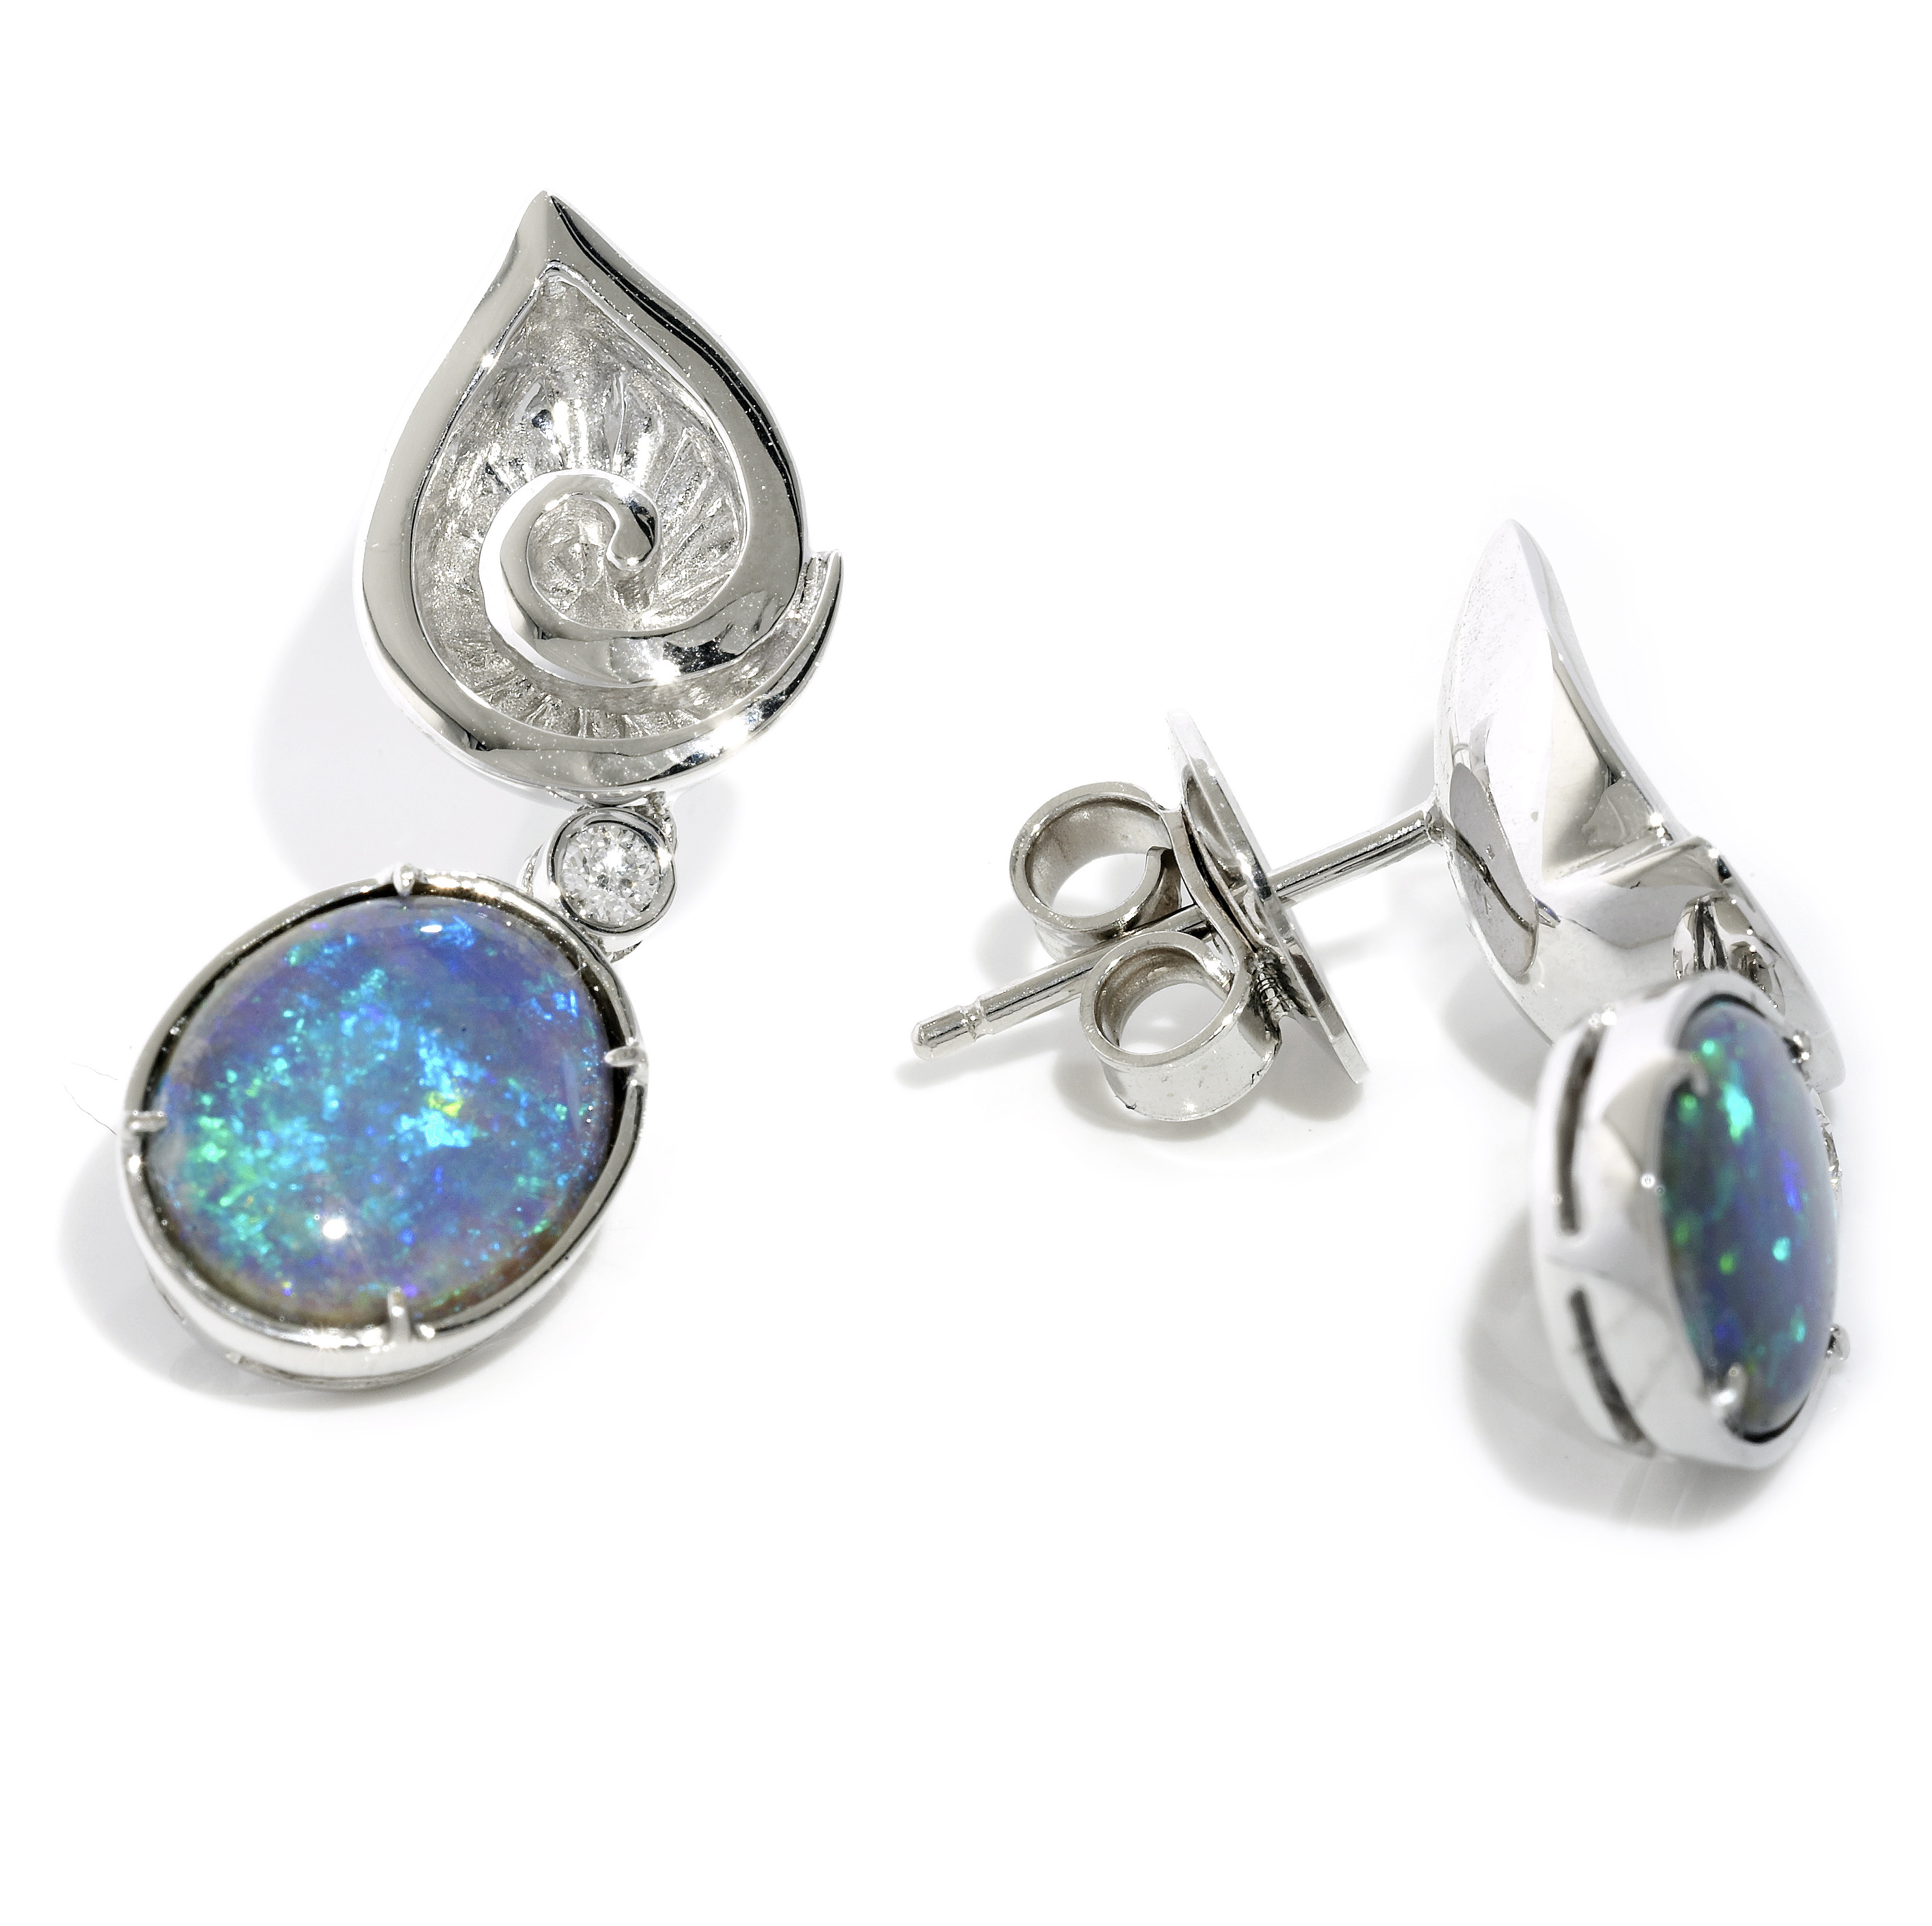 Pear ear studs with Opal drops